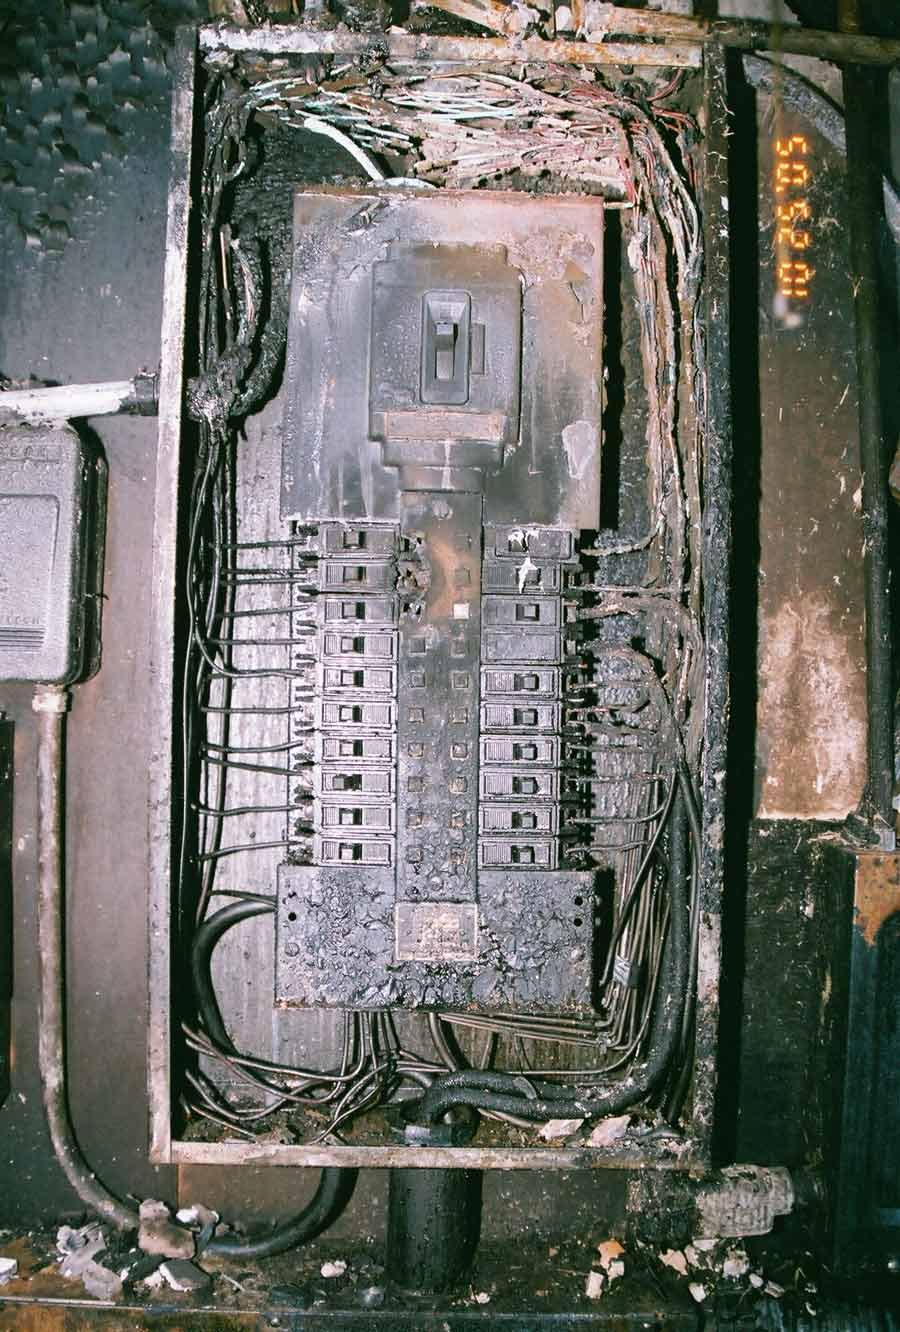 Electrical Distribution Panels Circuit Breaker Fires Diagram Panel Electric Severe Arcing In Box